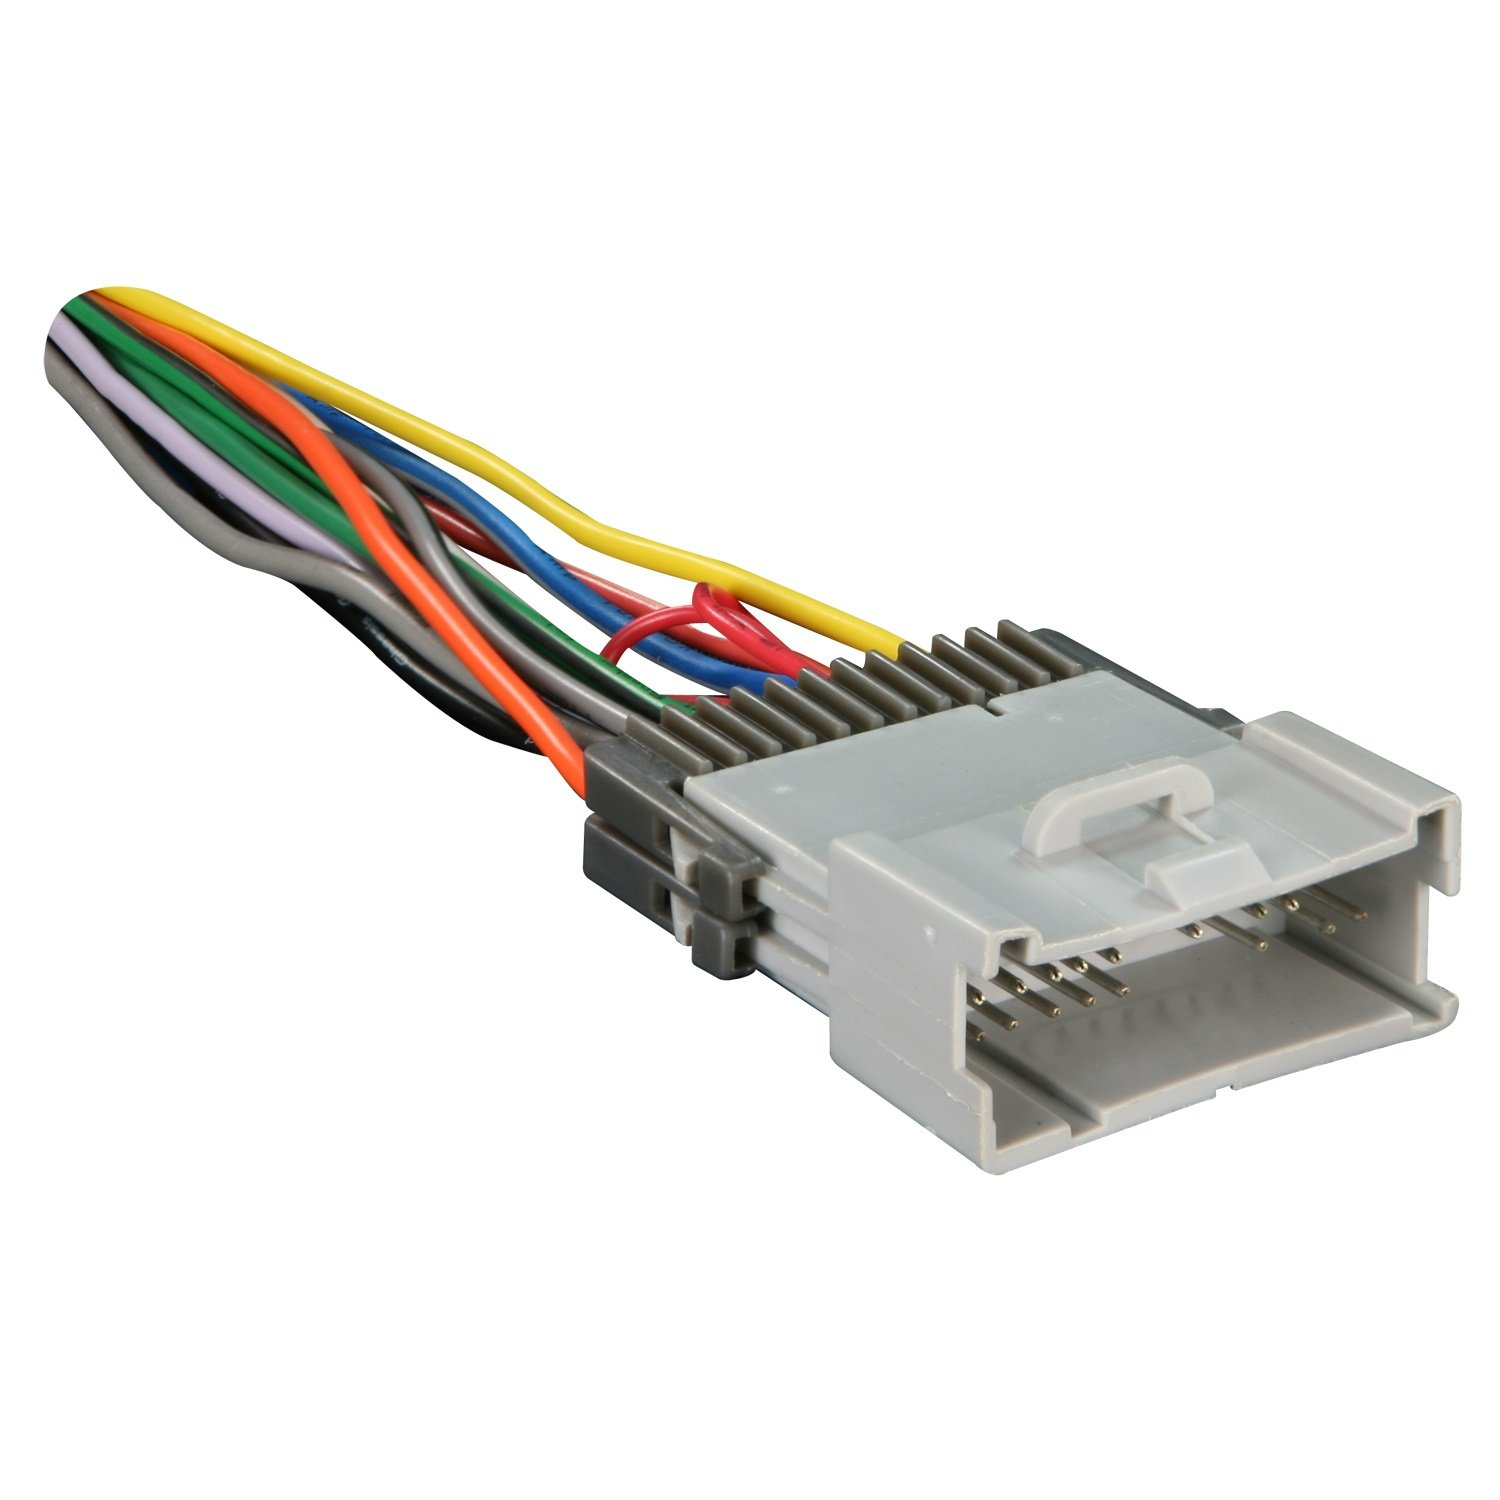 61TqUXX79PL._SL1500_ amazon com metra 70 2002 radio wiring harness for saturn 00 05  at panicattacktreatment.co